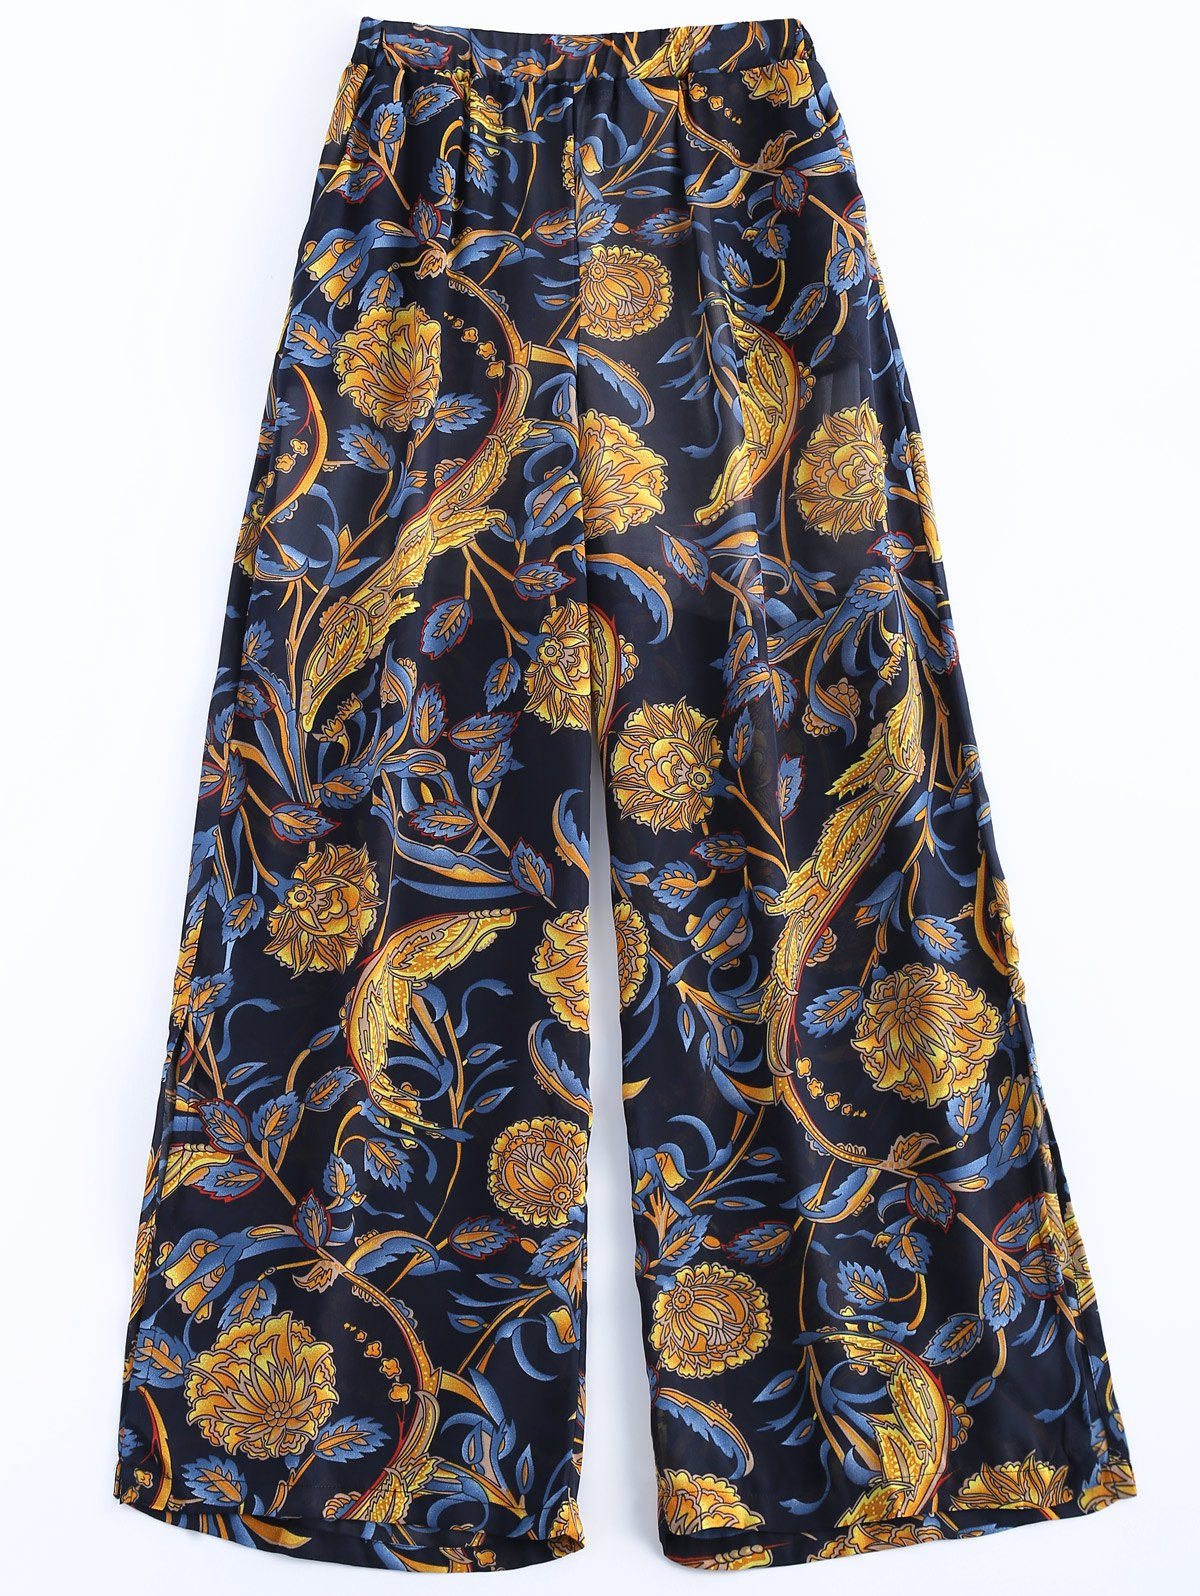 Casual Women's Elastic Waist Print Chiffon Palazzo Pants - EARTHY ONE SIZE(FIT SIZE XS TO M)